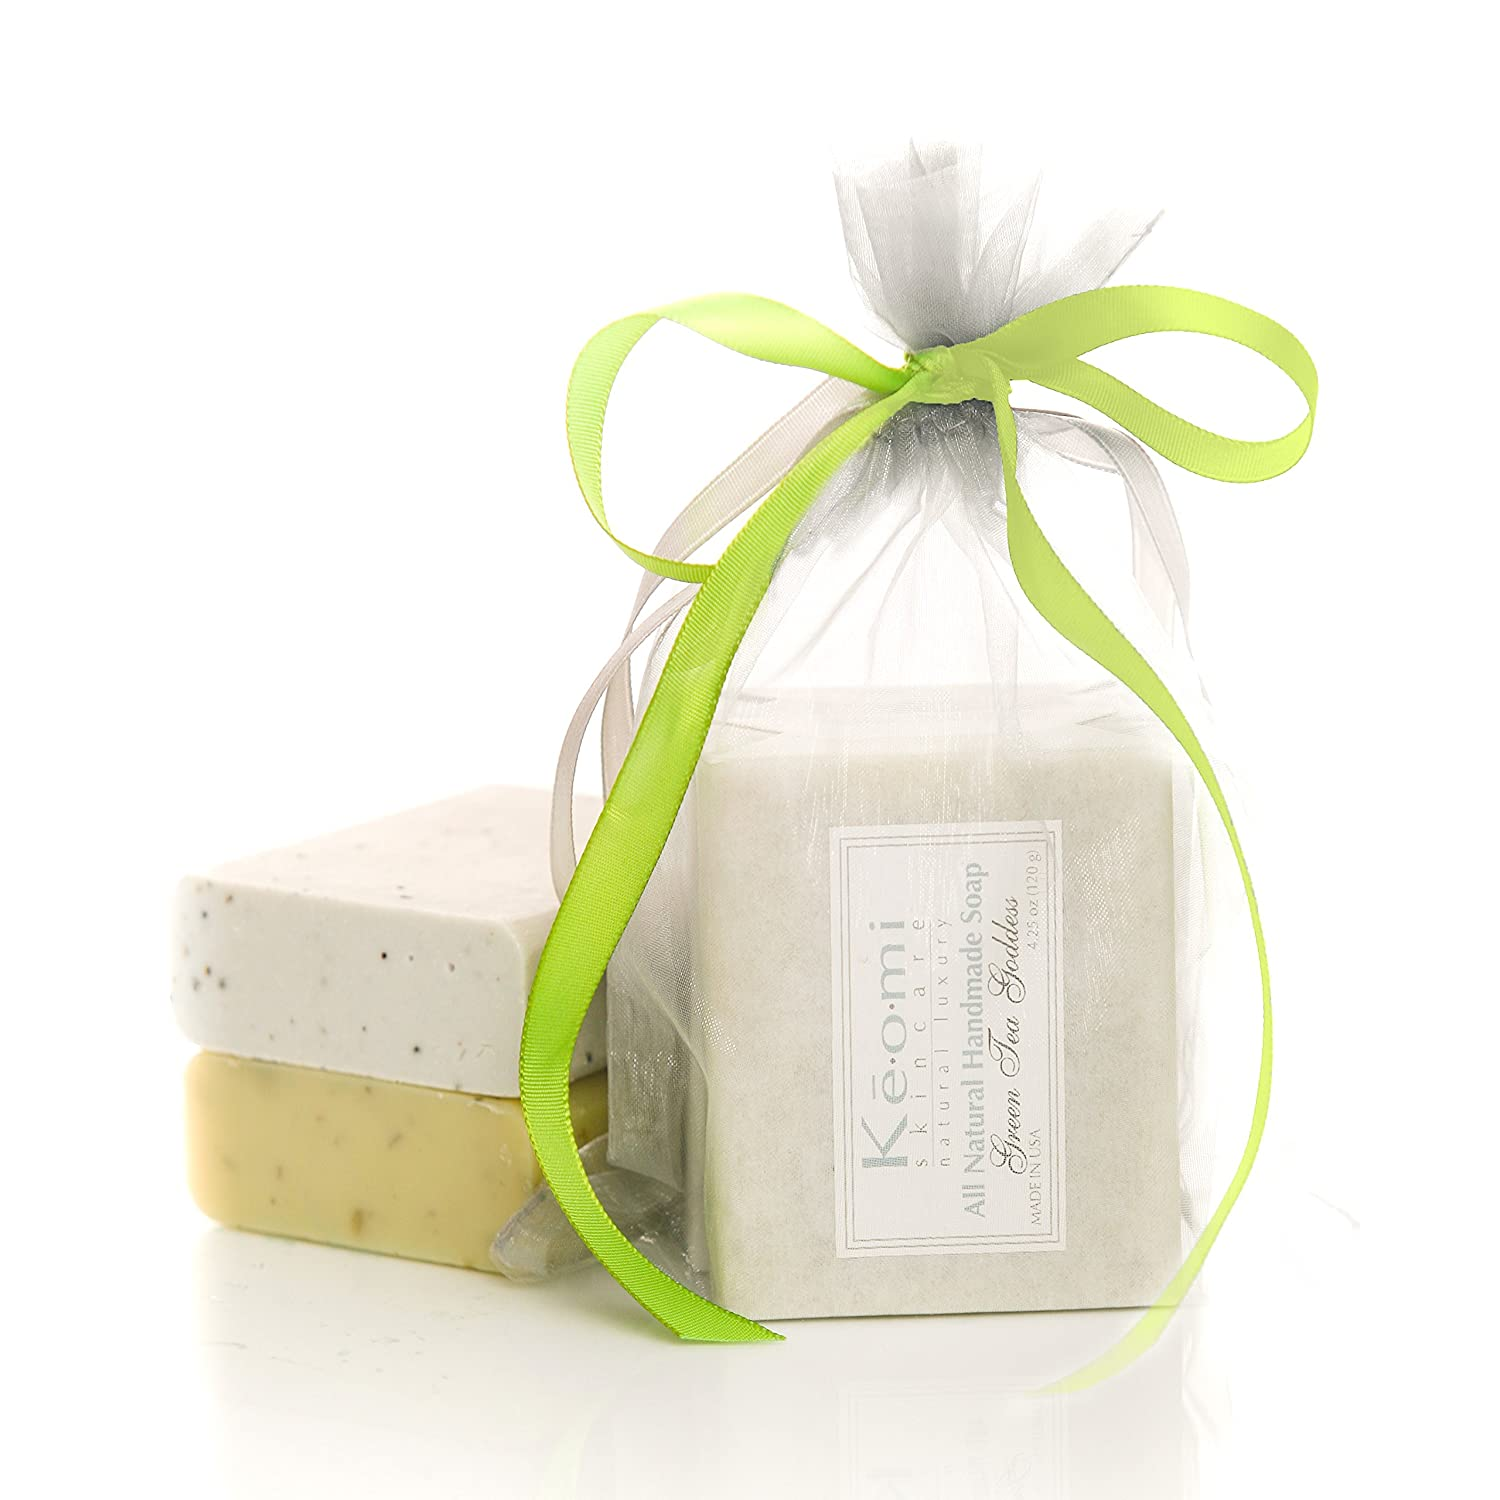 Organic Handmade Soap Gift Set by KEOMI NATURALS - Scented w/Pure Aromatherapy Grade Essential Oils - 2 Full Size Bars (Green Tea Goddess & Sea Breeze) Comes Packaged in a Lovely Organza Bag